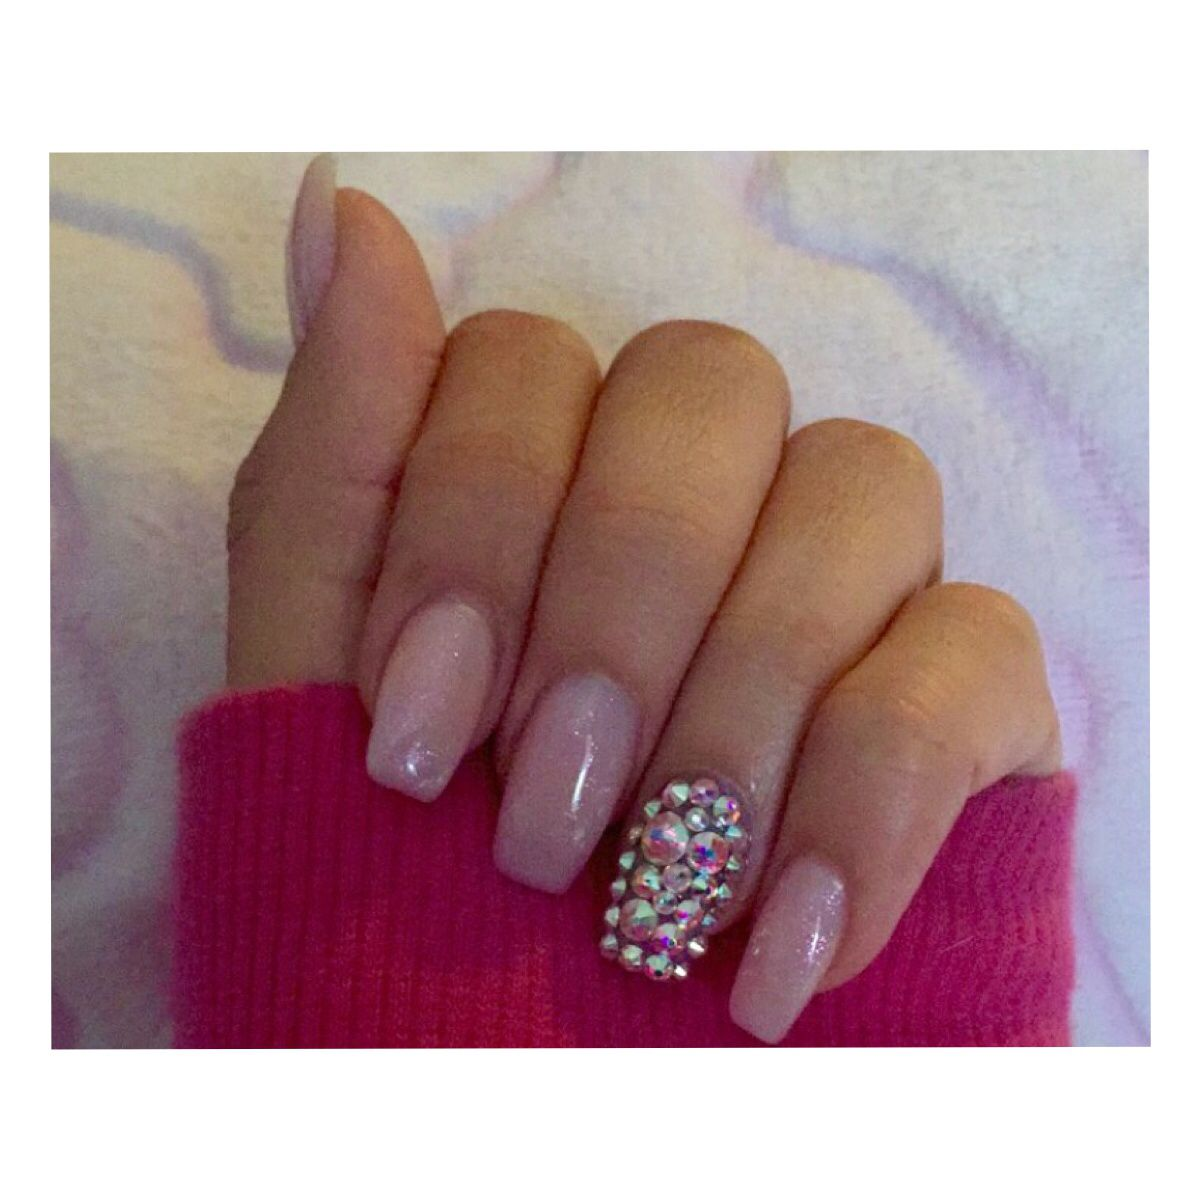 Simple classy glitter coffin nails MINUS the diamonds on the one ...